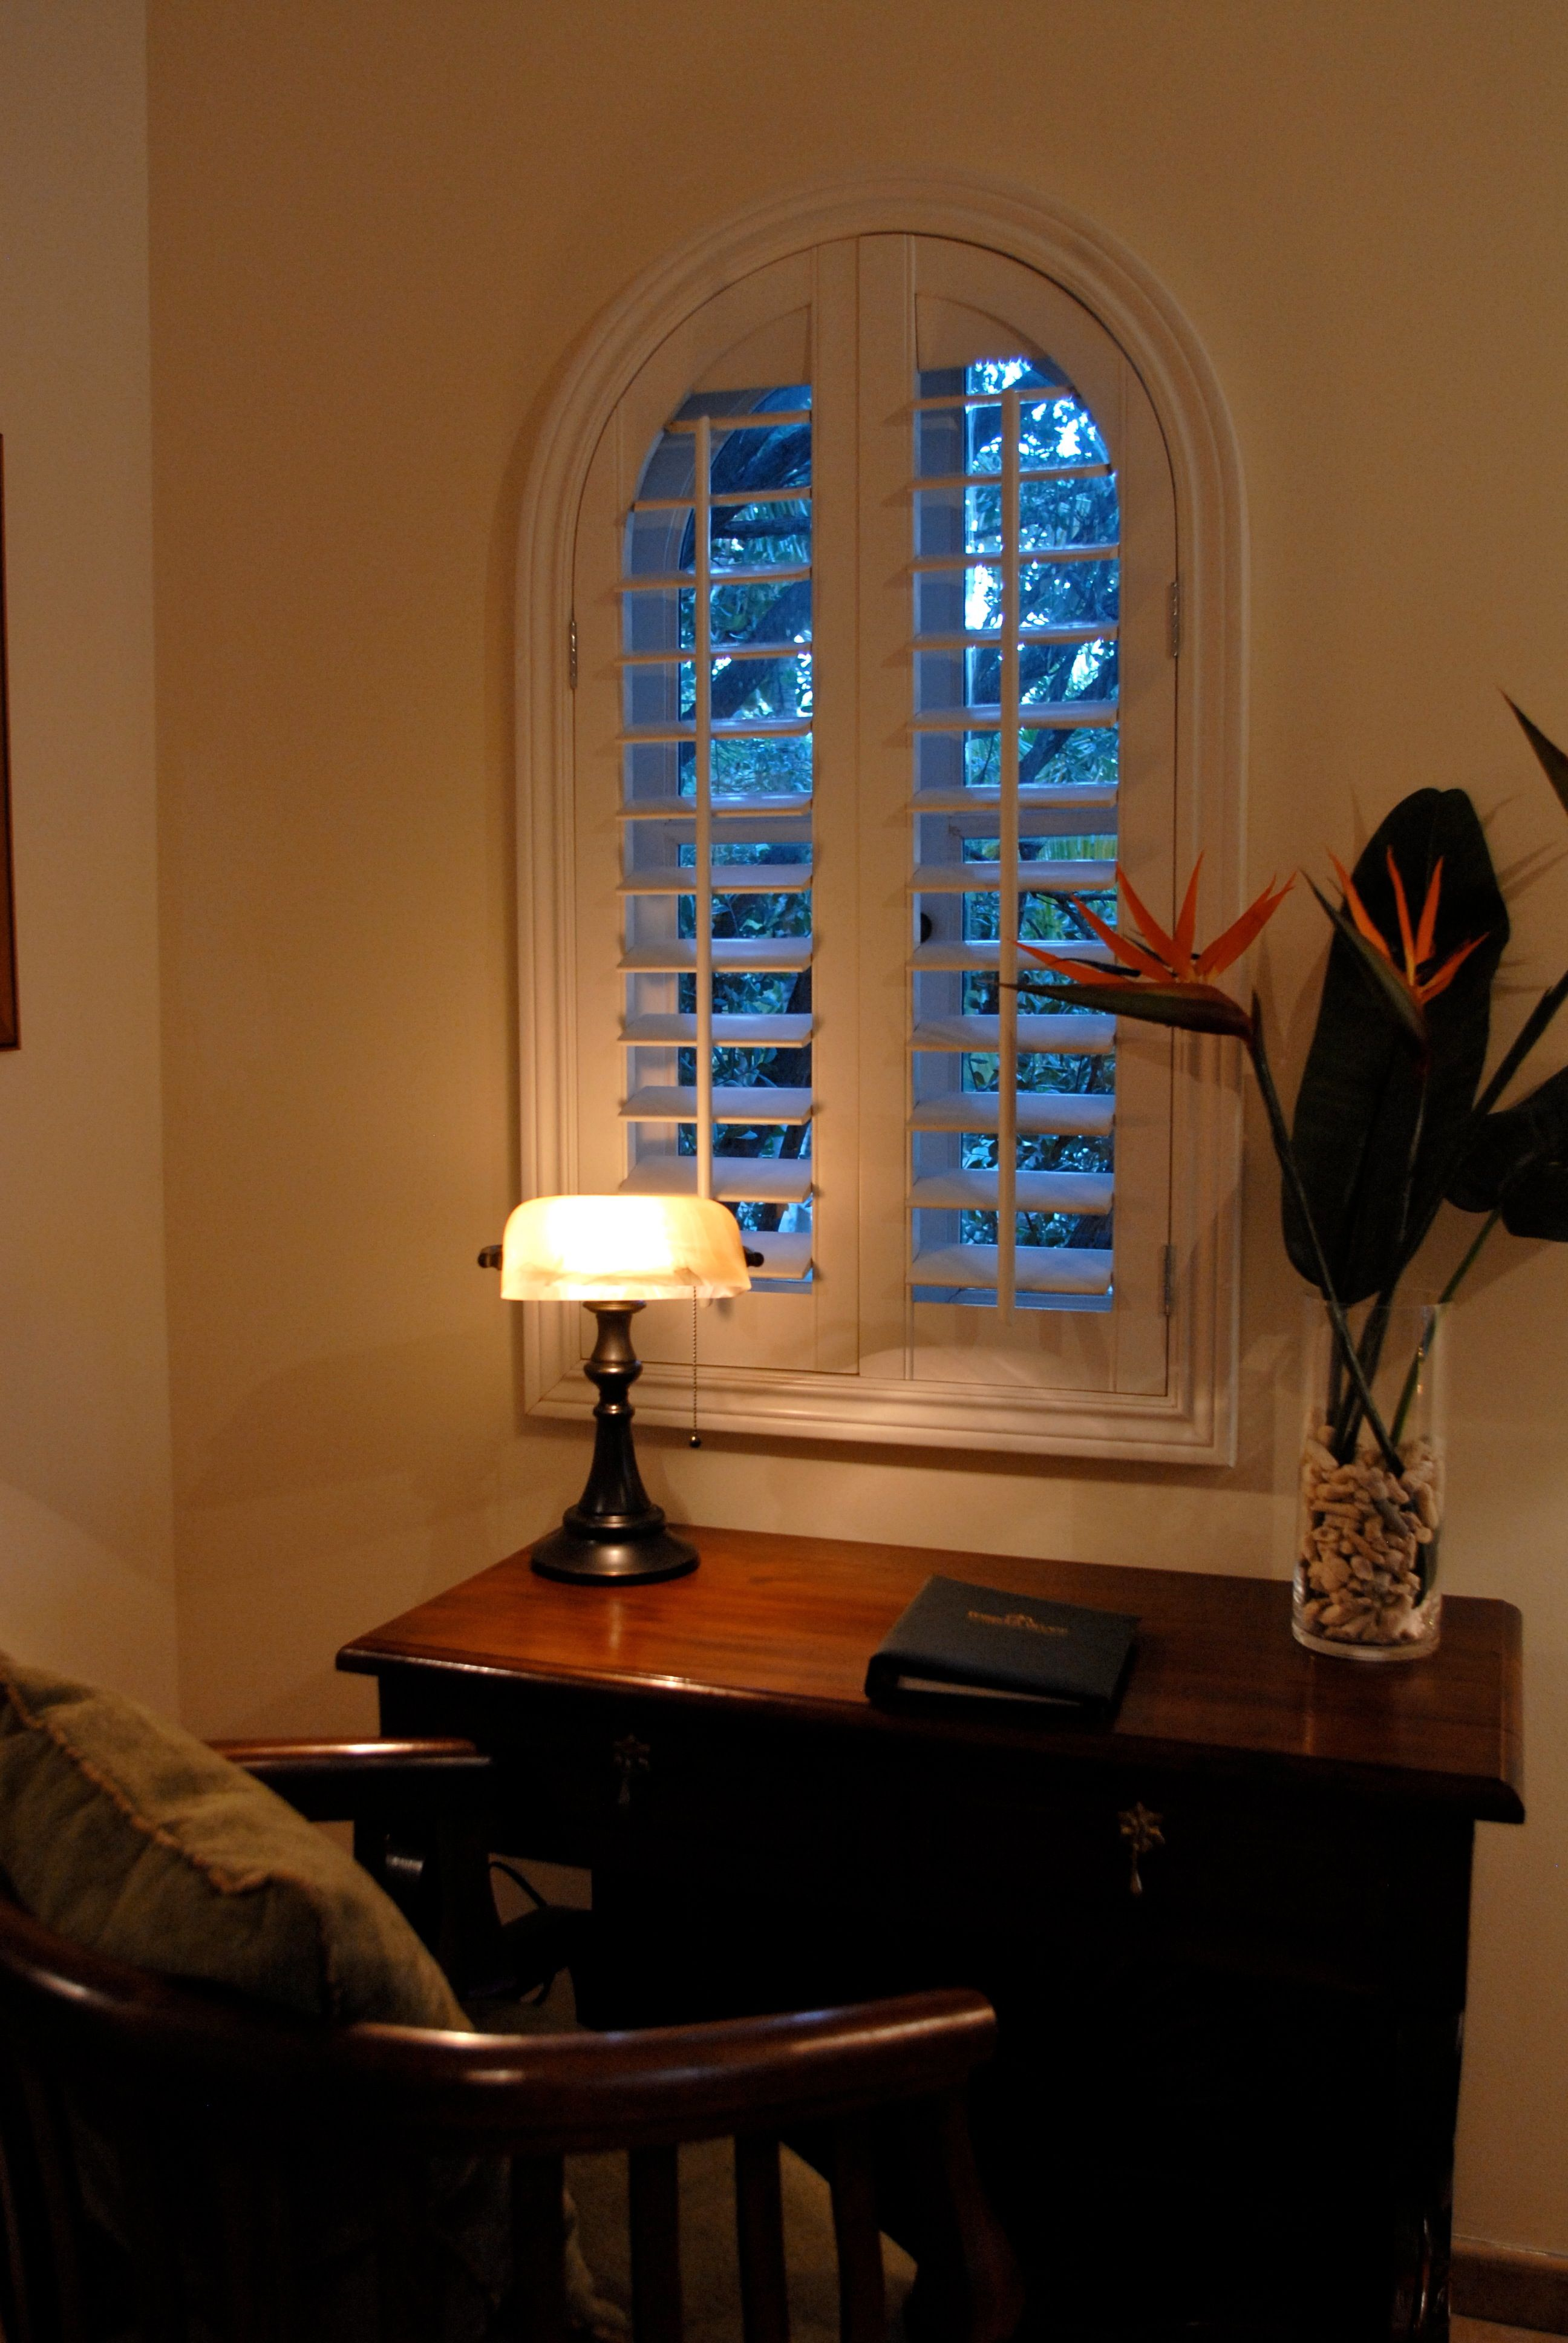 Pin by Mart j. Haney on Home decor Interior shutters